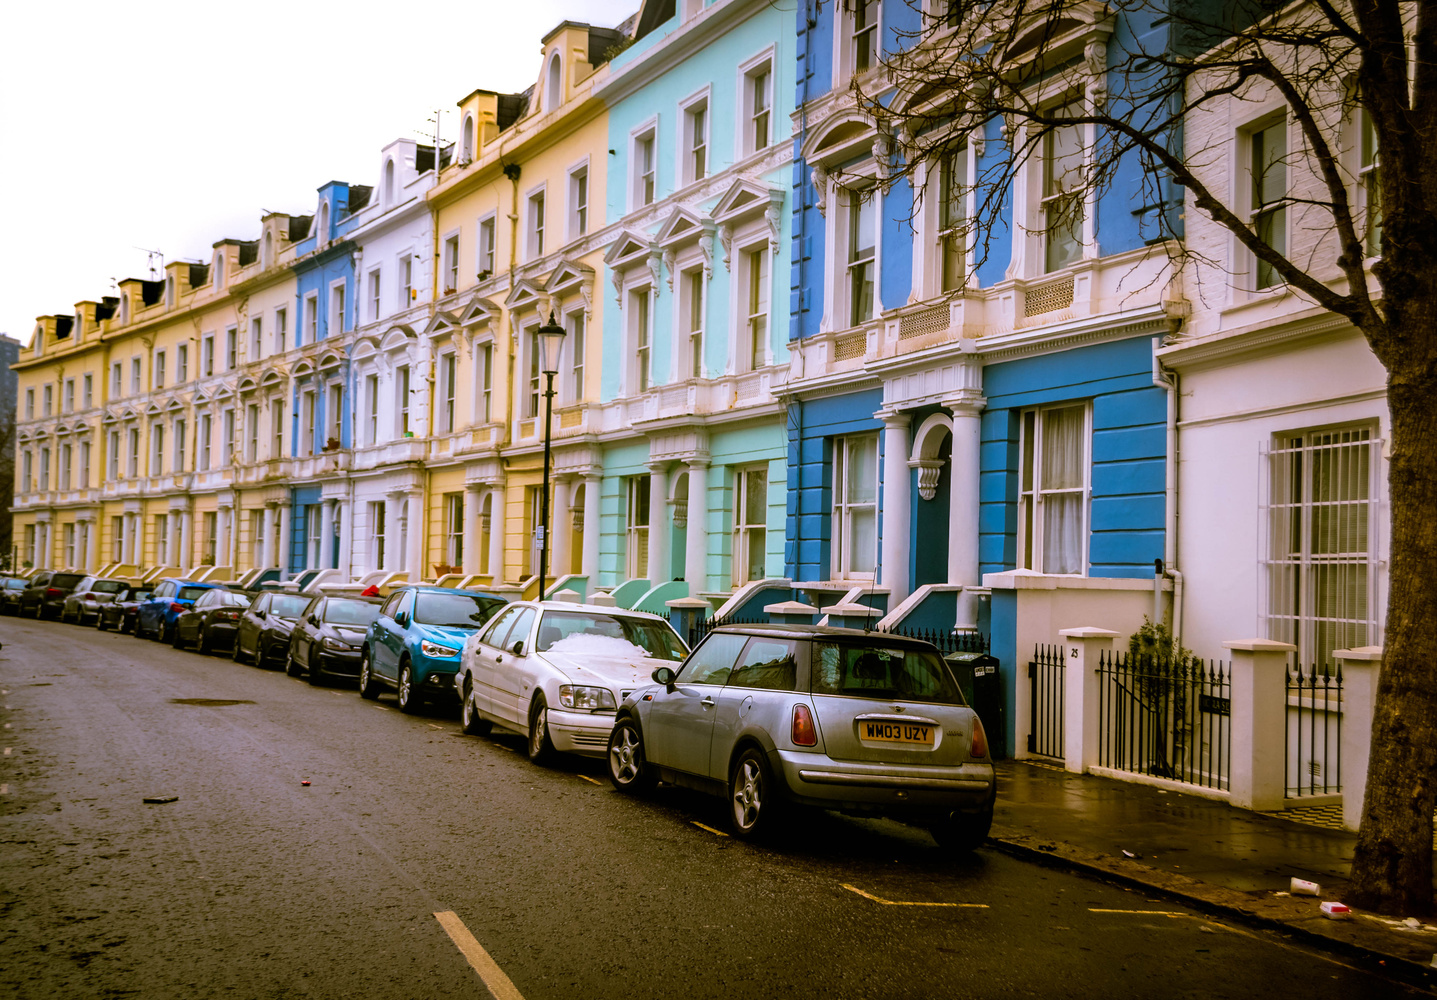 Notting Hill #1 by Tom Juggins